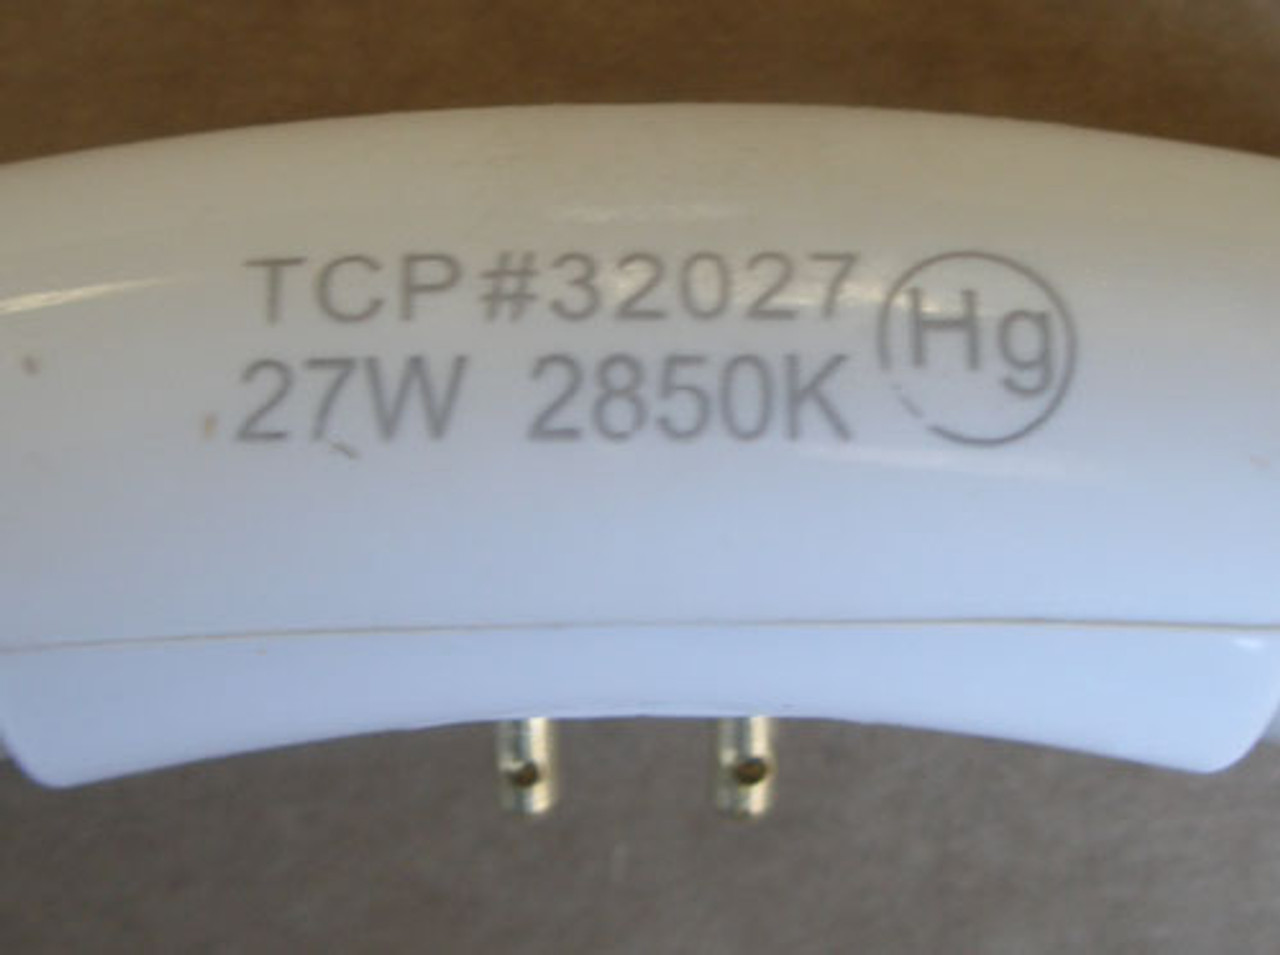 TCP 32027 27W 120V CIRCLINE Circular T6 Fluorescent Tube Bulb - 2 Pc. - New